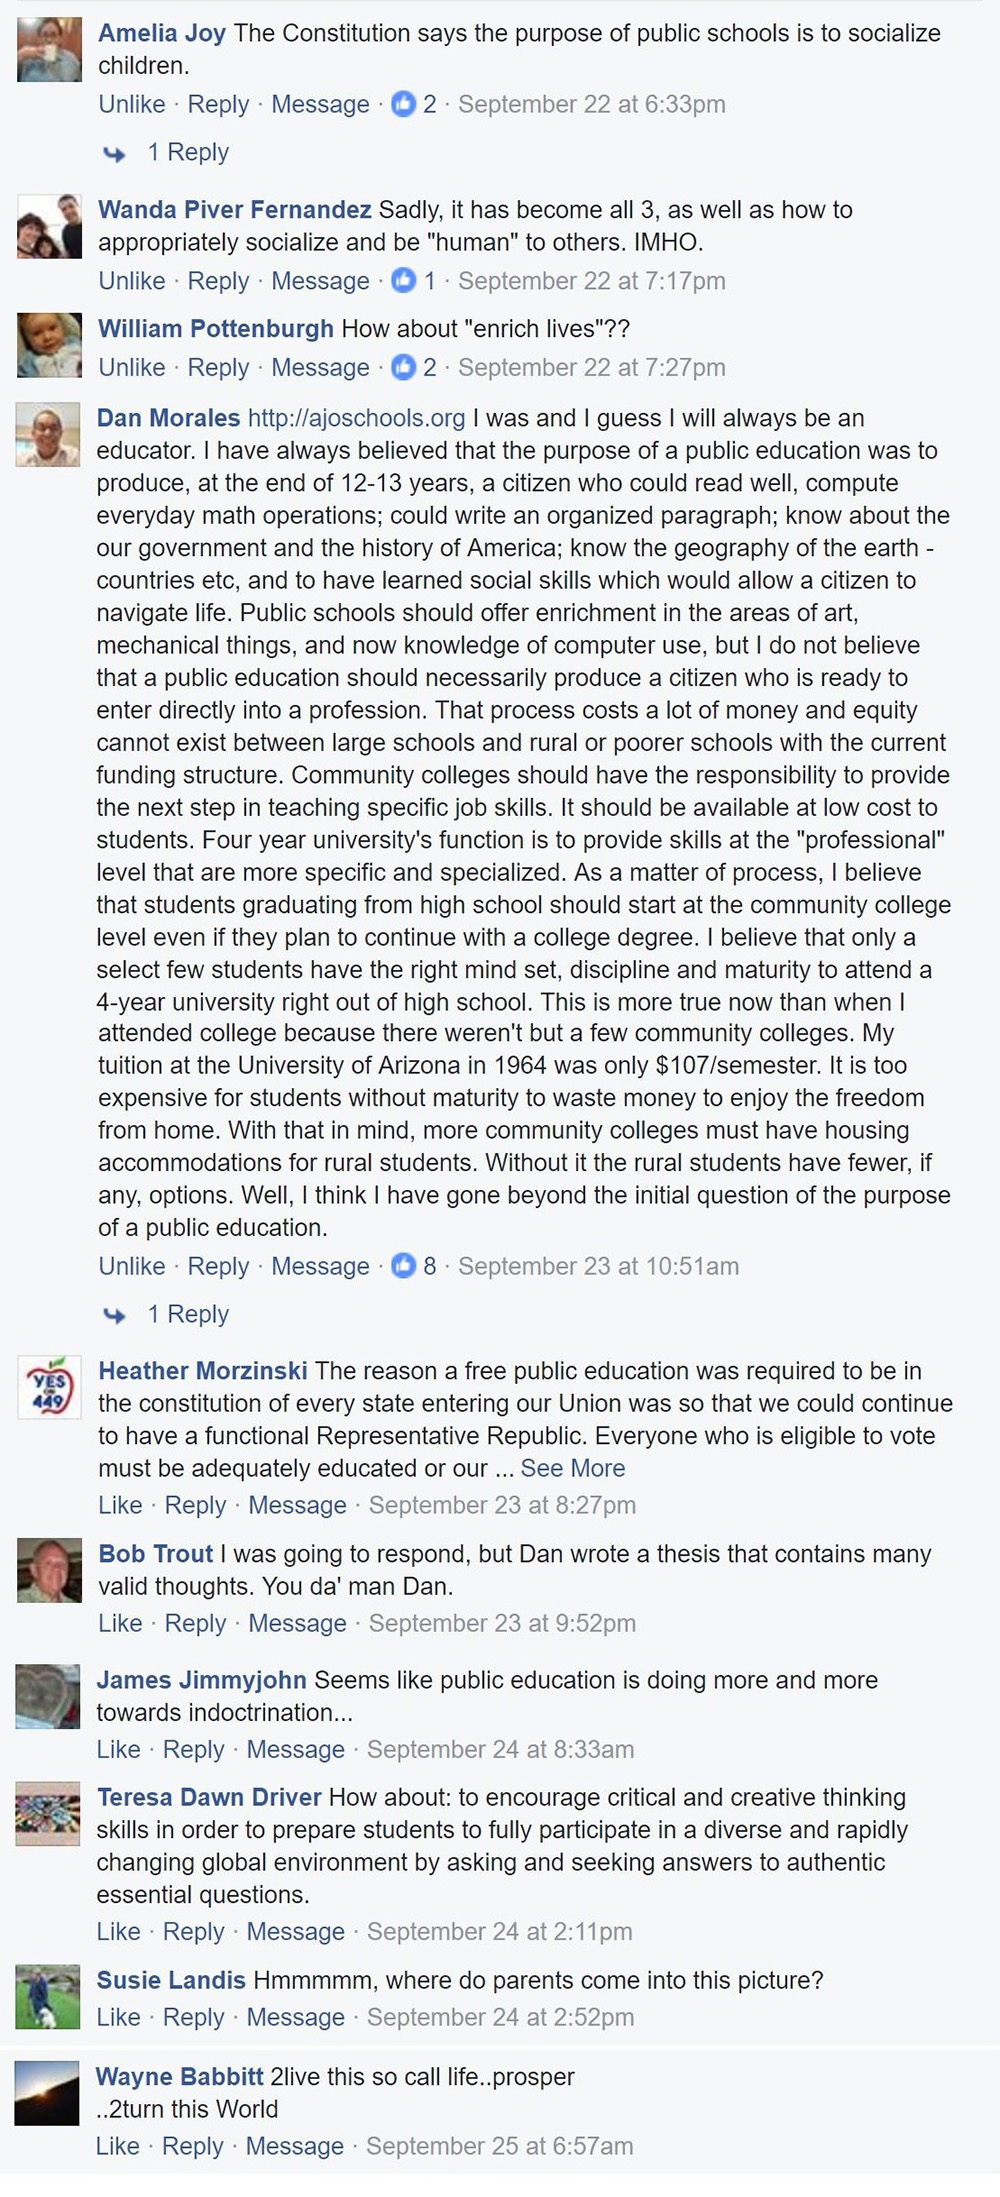 Americans speak up on purpose of a public school education (+ Infographic) SocialMediaCommentsPDKPollFinal